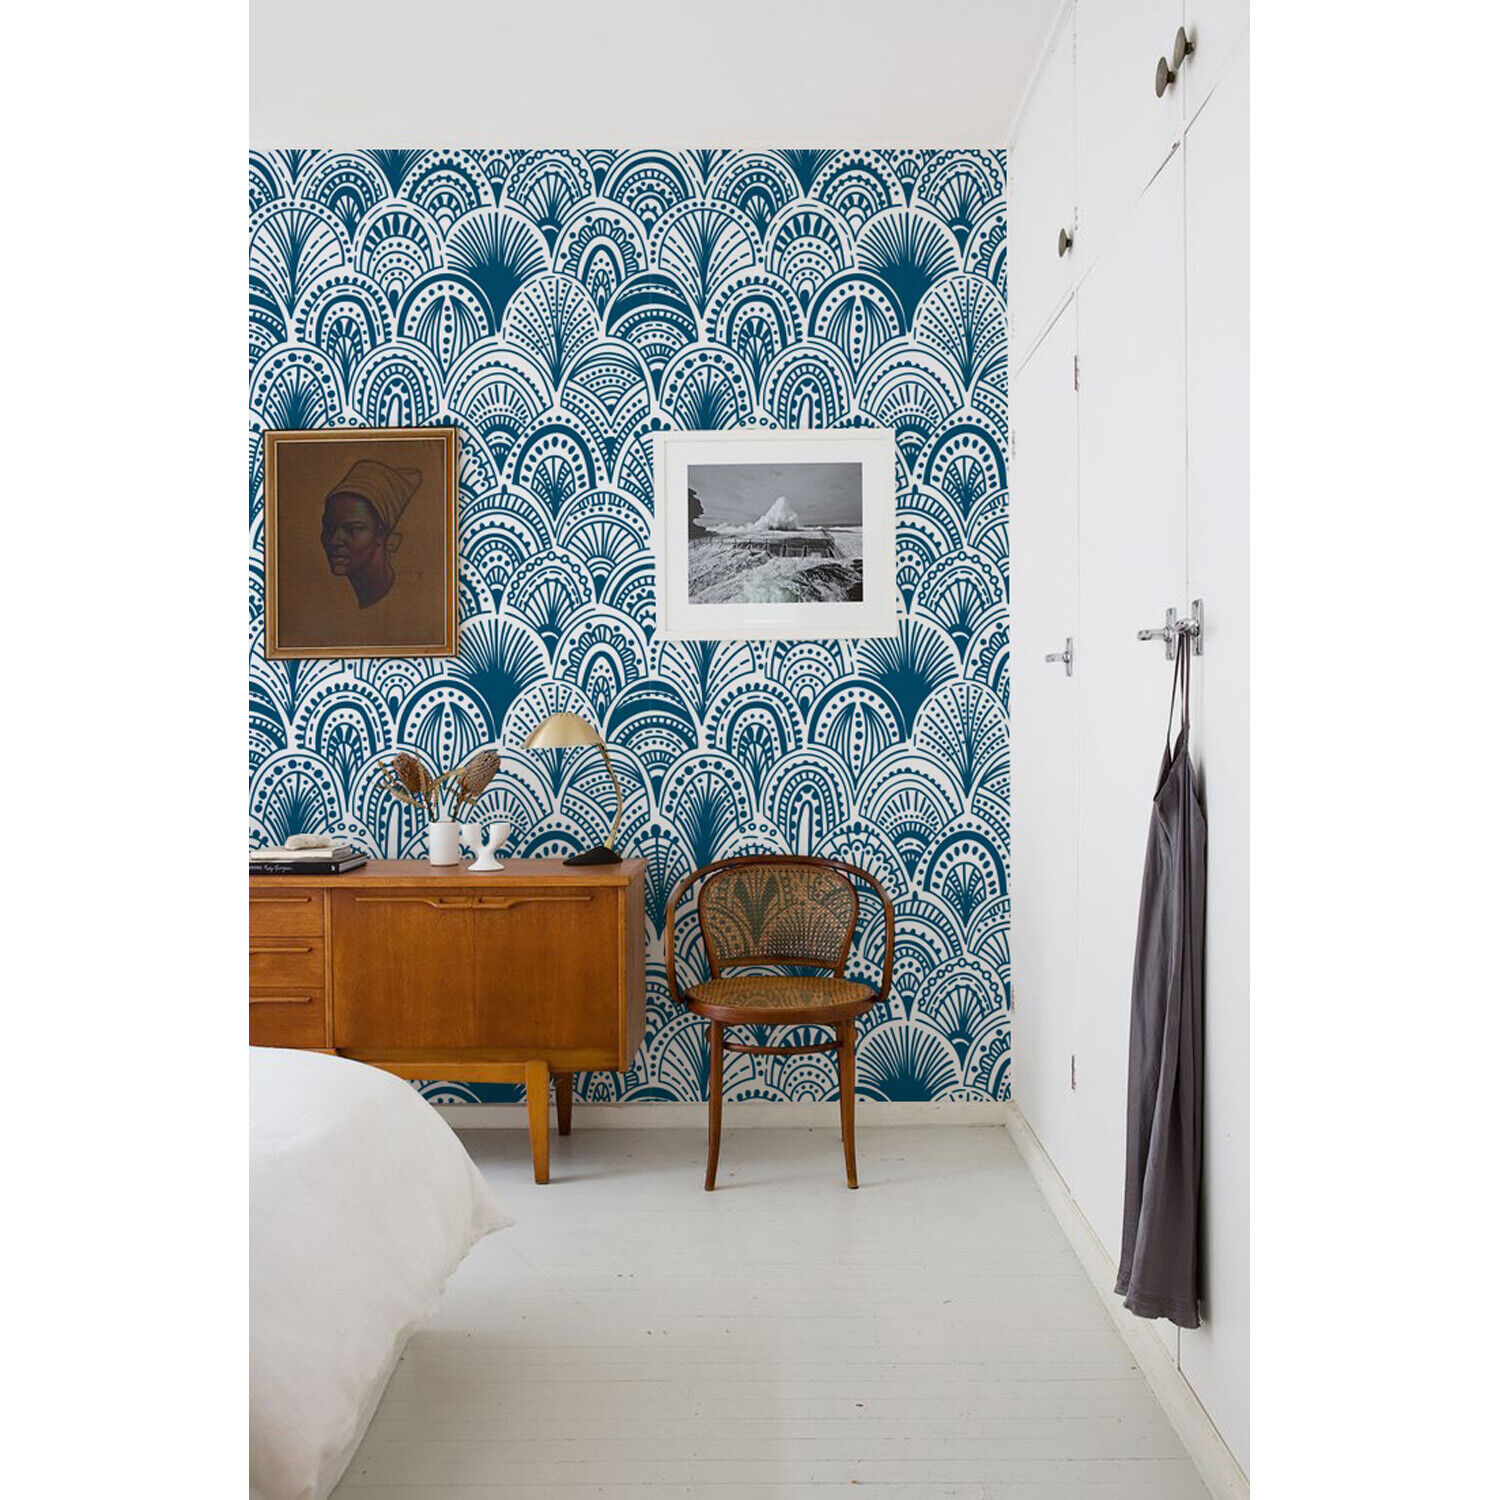 Blau Bohemian Non-woven wallpaper Blau Abstract Modern Wall Mural Decal